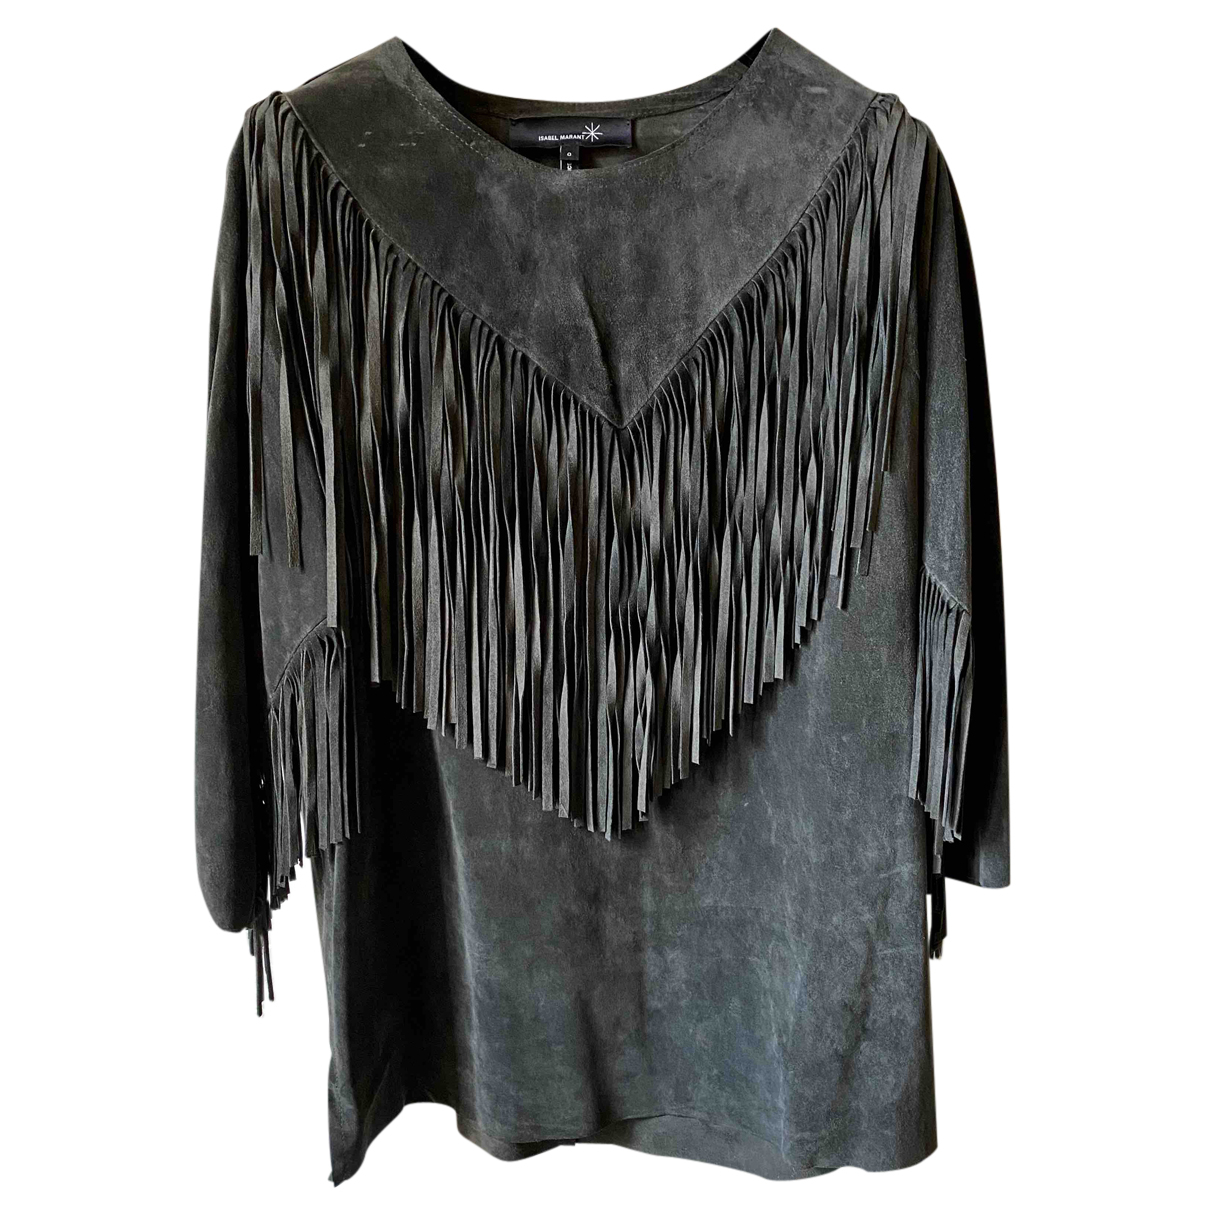 Isabel Marant N Anthracite Leather  top for Women 0 0-5